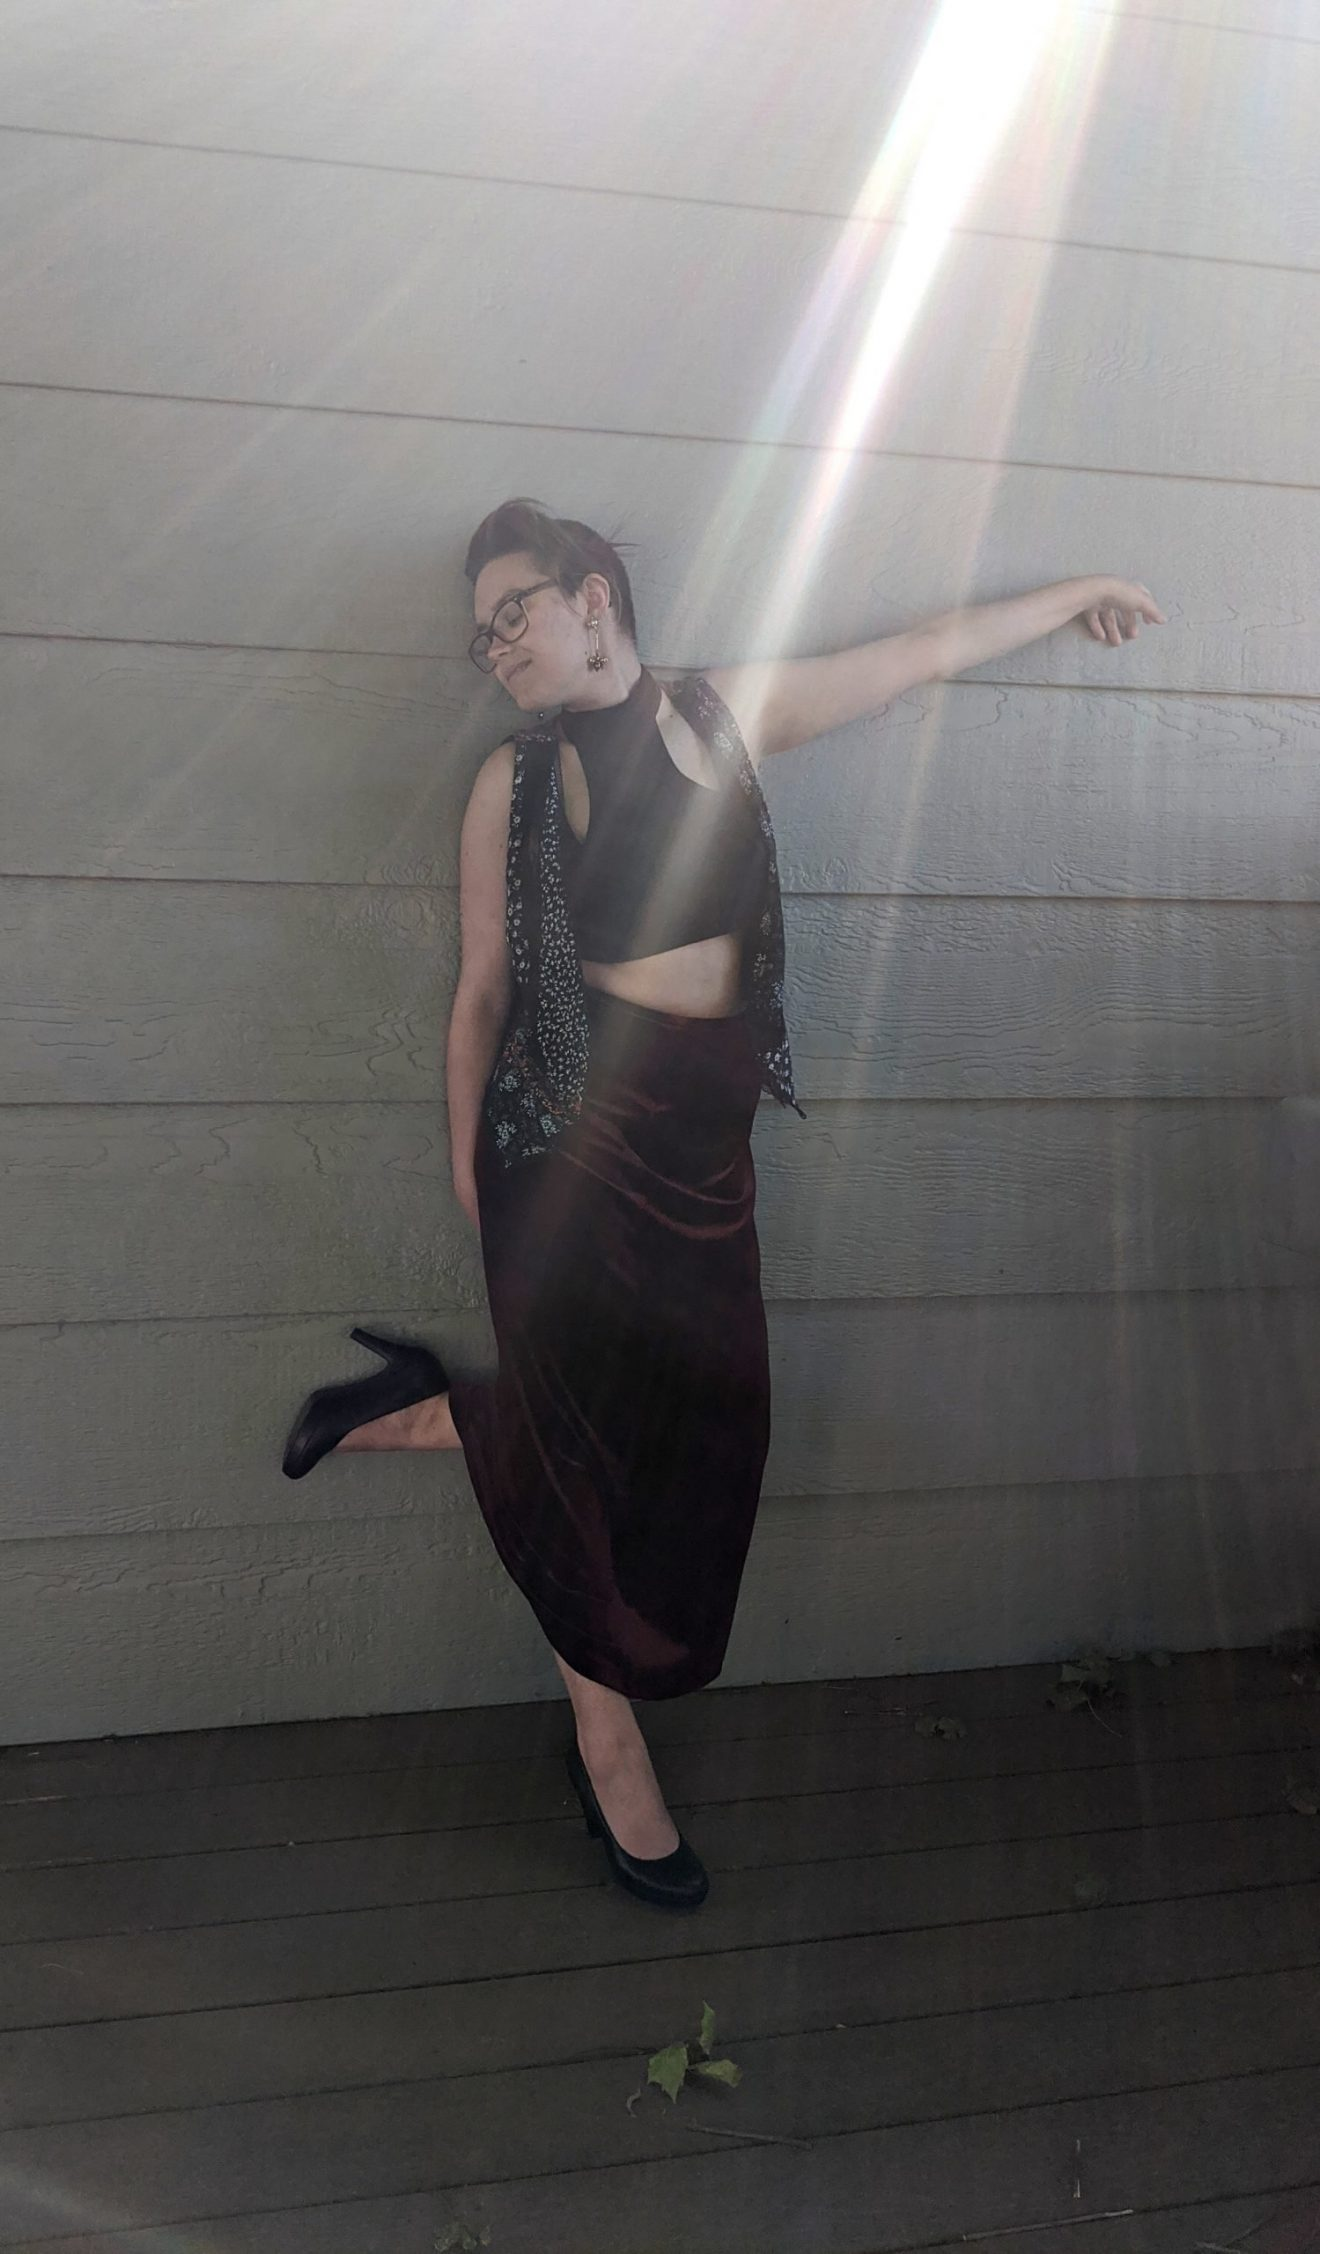 I Feared Waking Up Alissa Ackerman Story Behind The Cloth fashion blog vintage antique witchy bohemian outfit 17 scaled